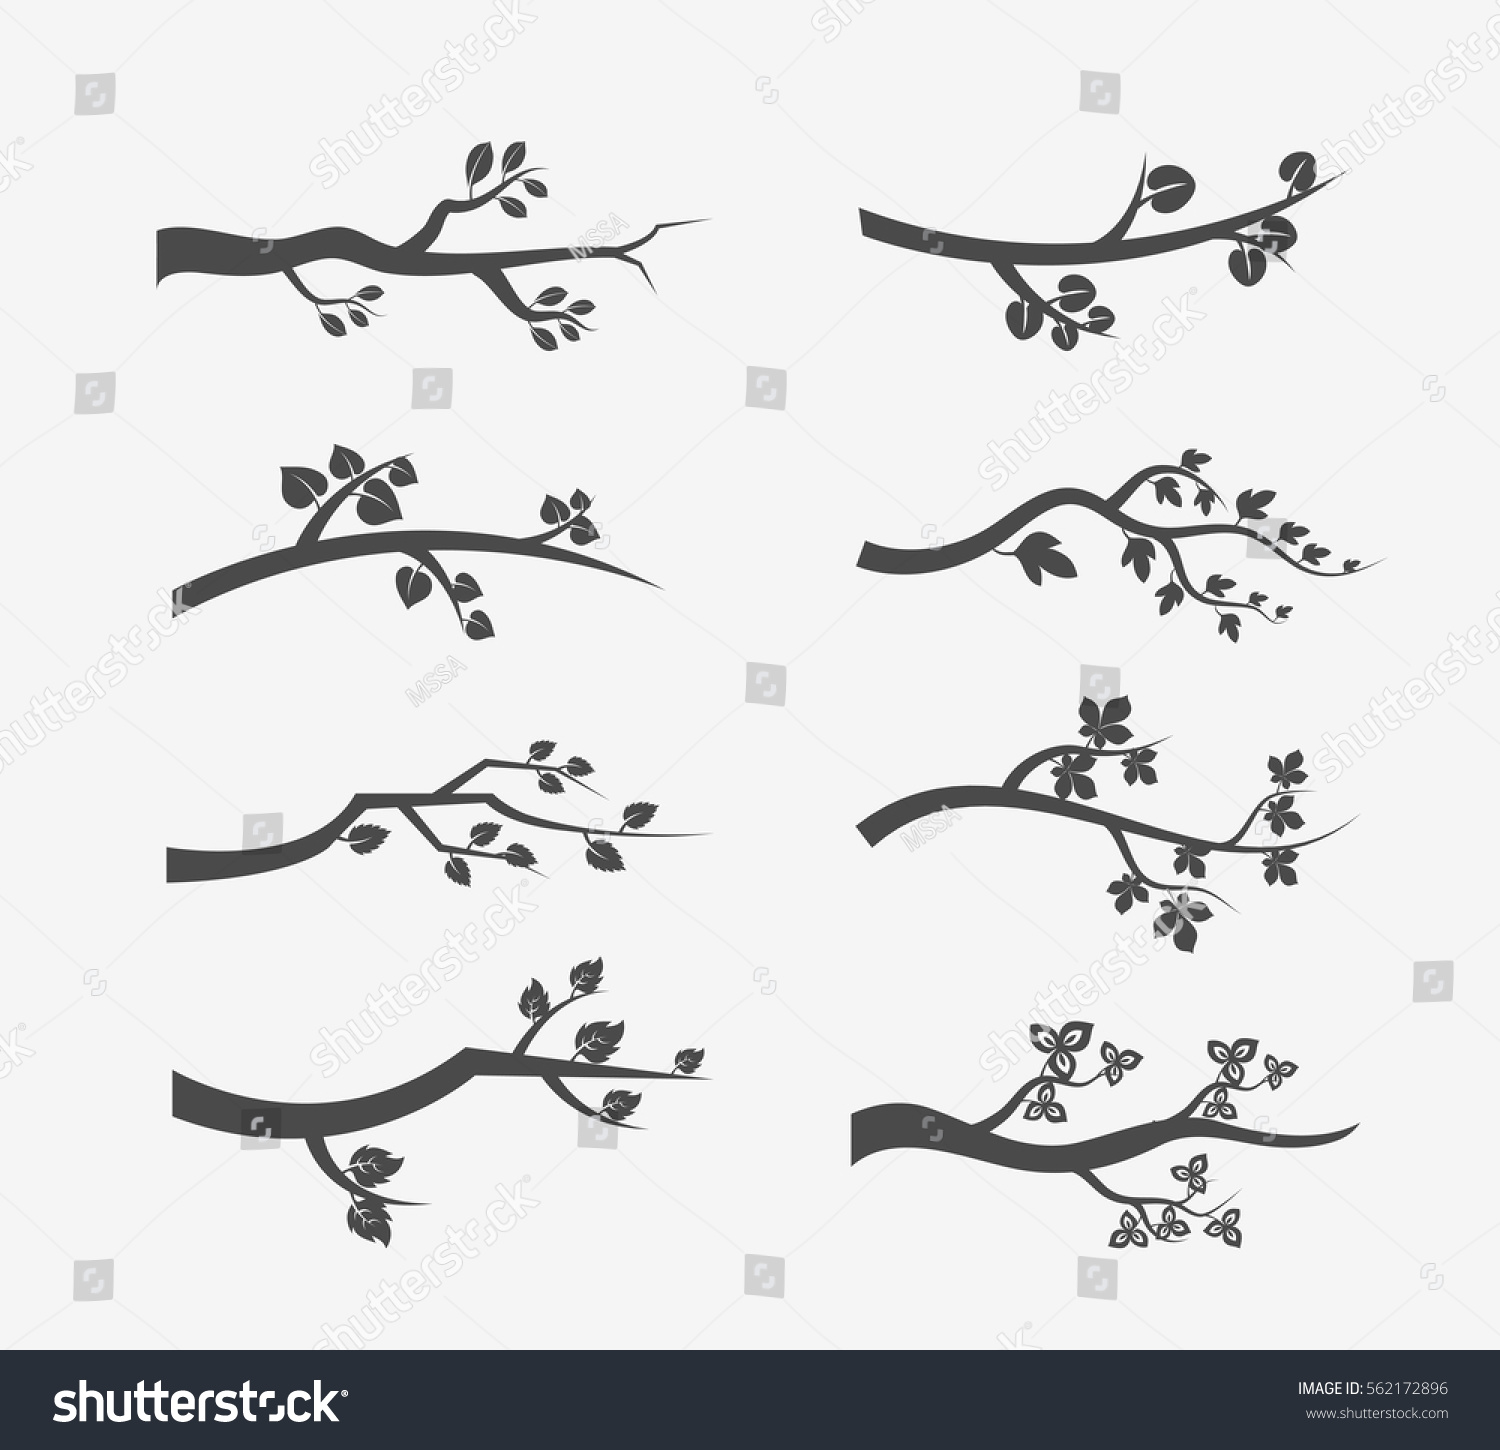 tree branch with leaves vector. vector tree branches silhouette with leaves. set of branch illustration leaves